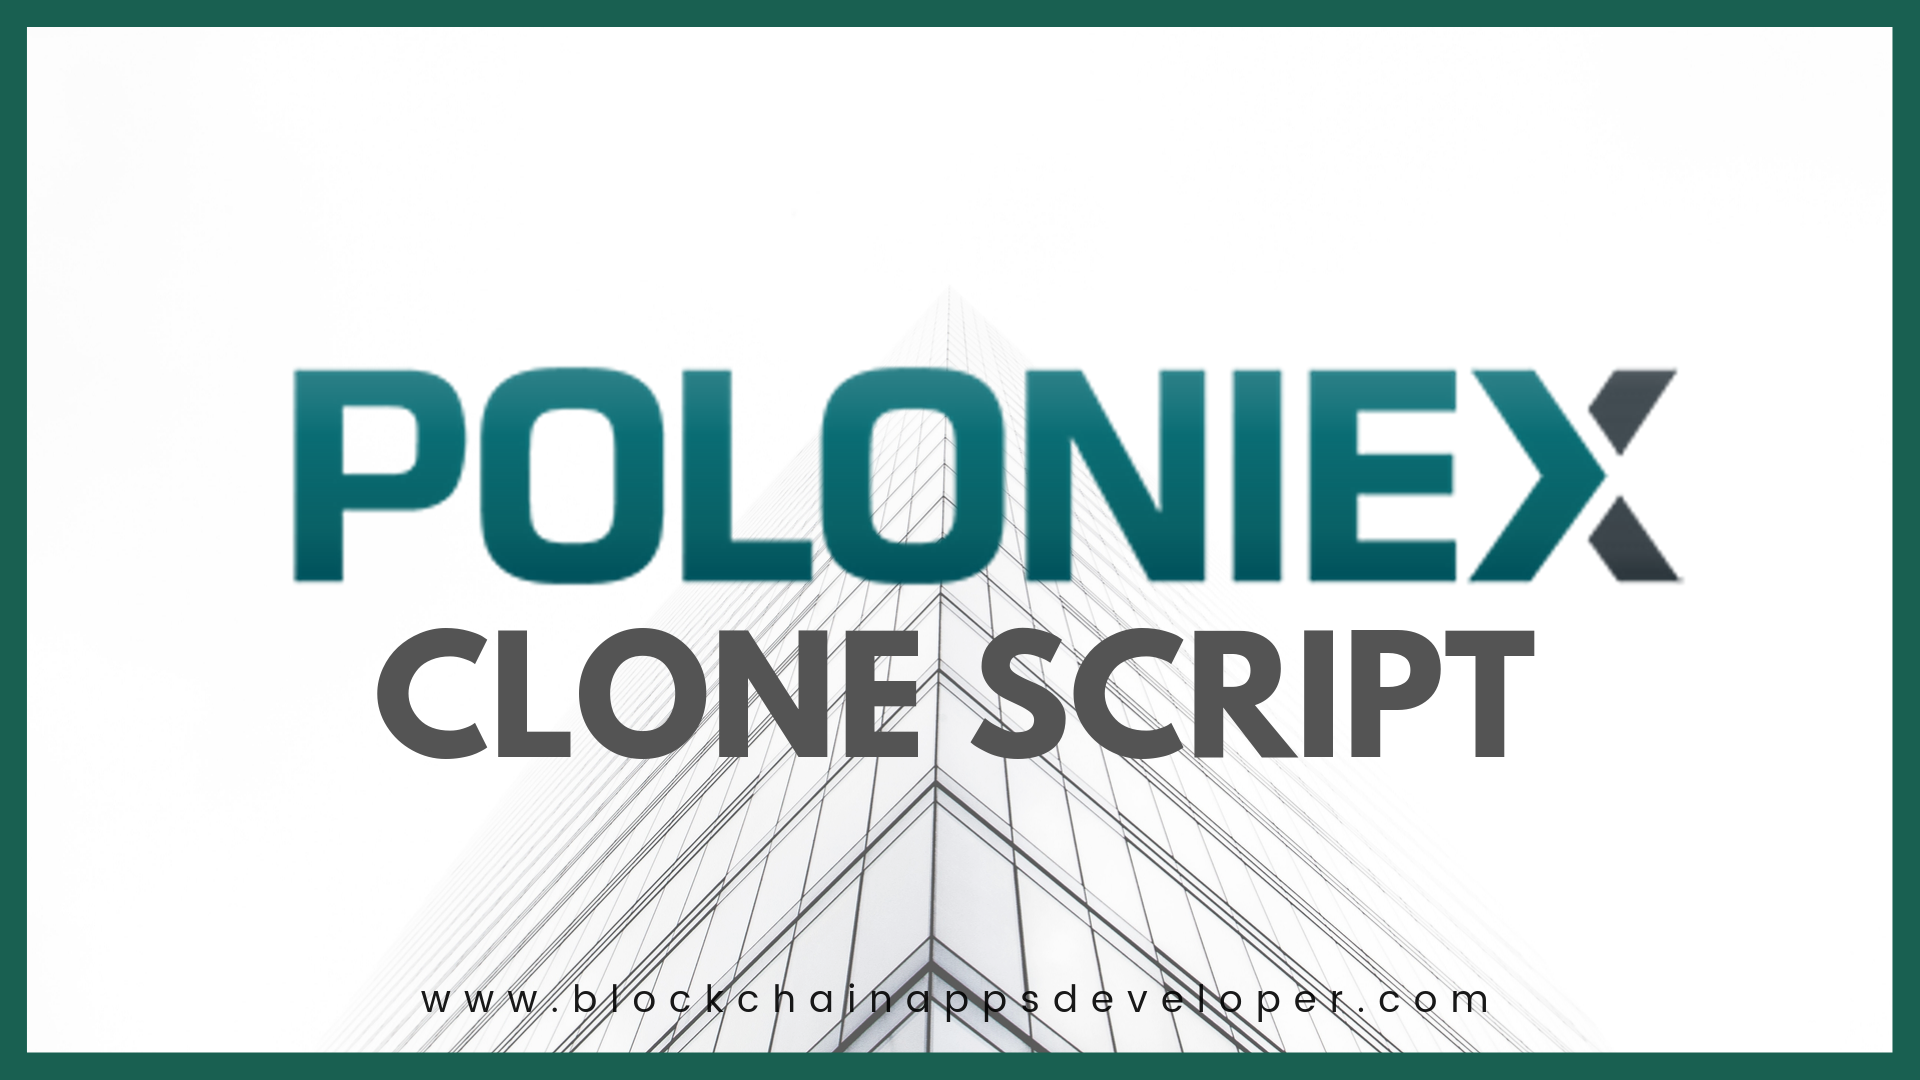 How to Start Exchange like Poloniex?